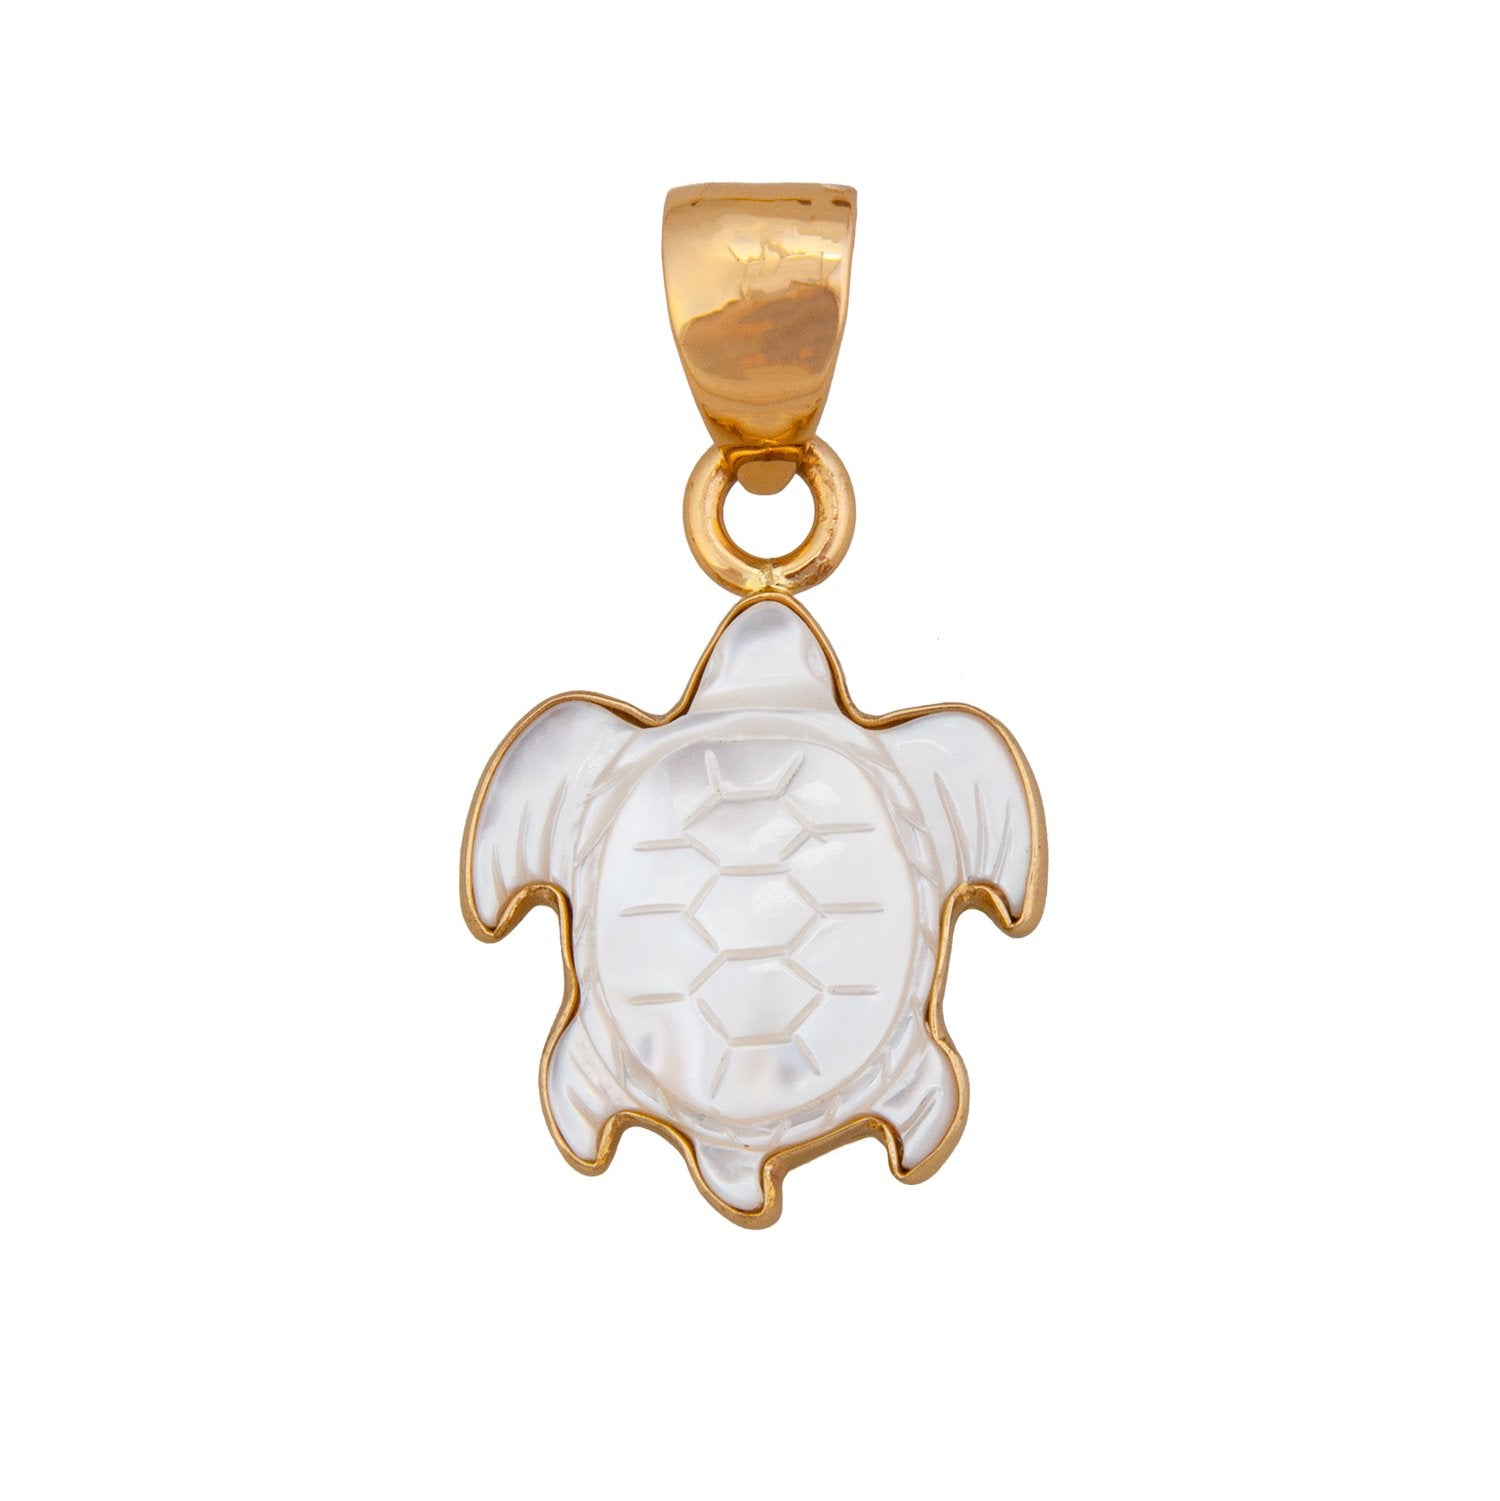 alchemia-mother-of-pearl-sea-turtle-pendant - 1 - Charles Albert Inc